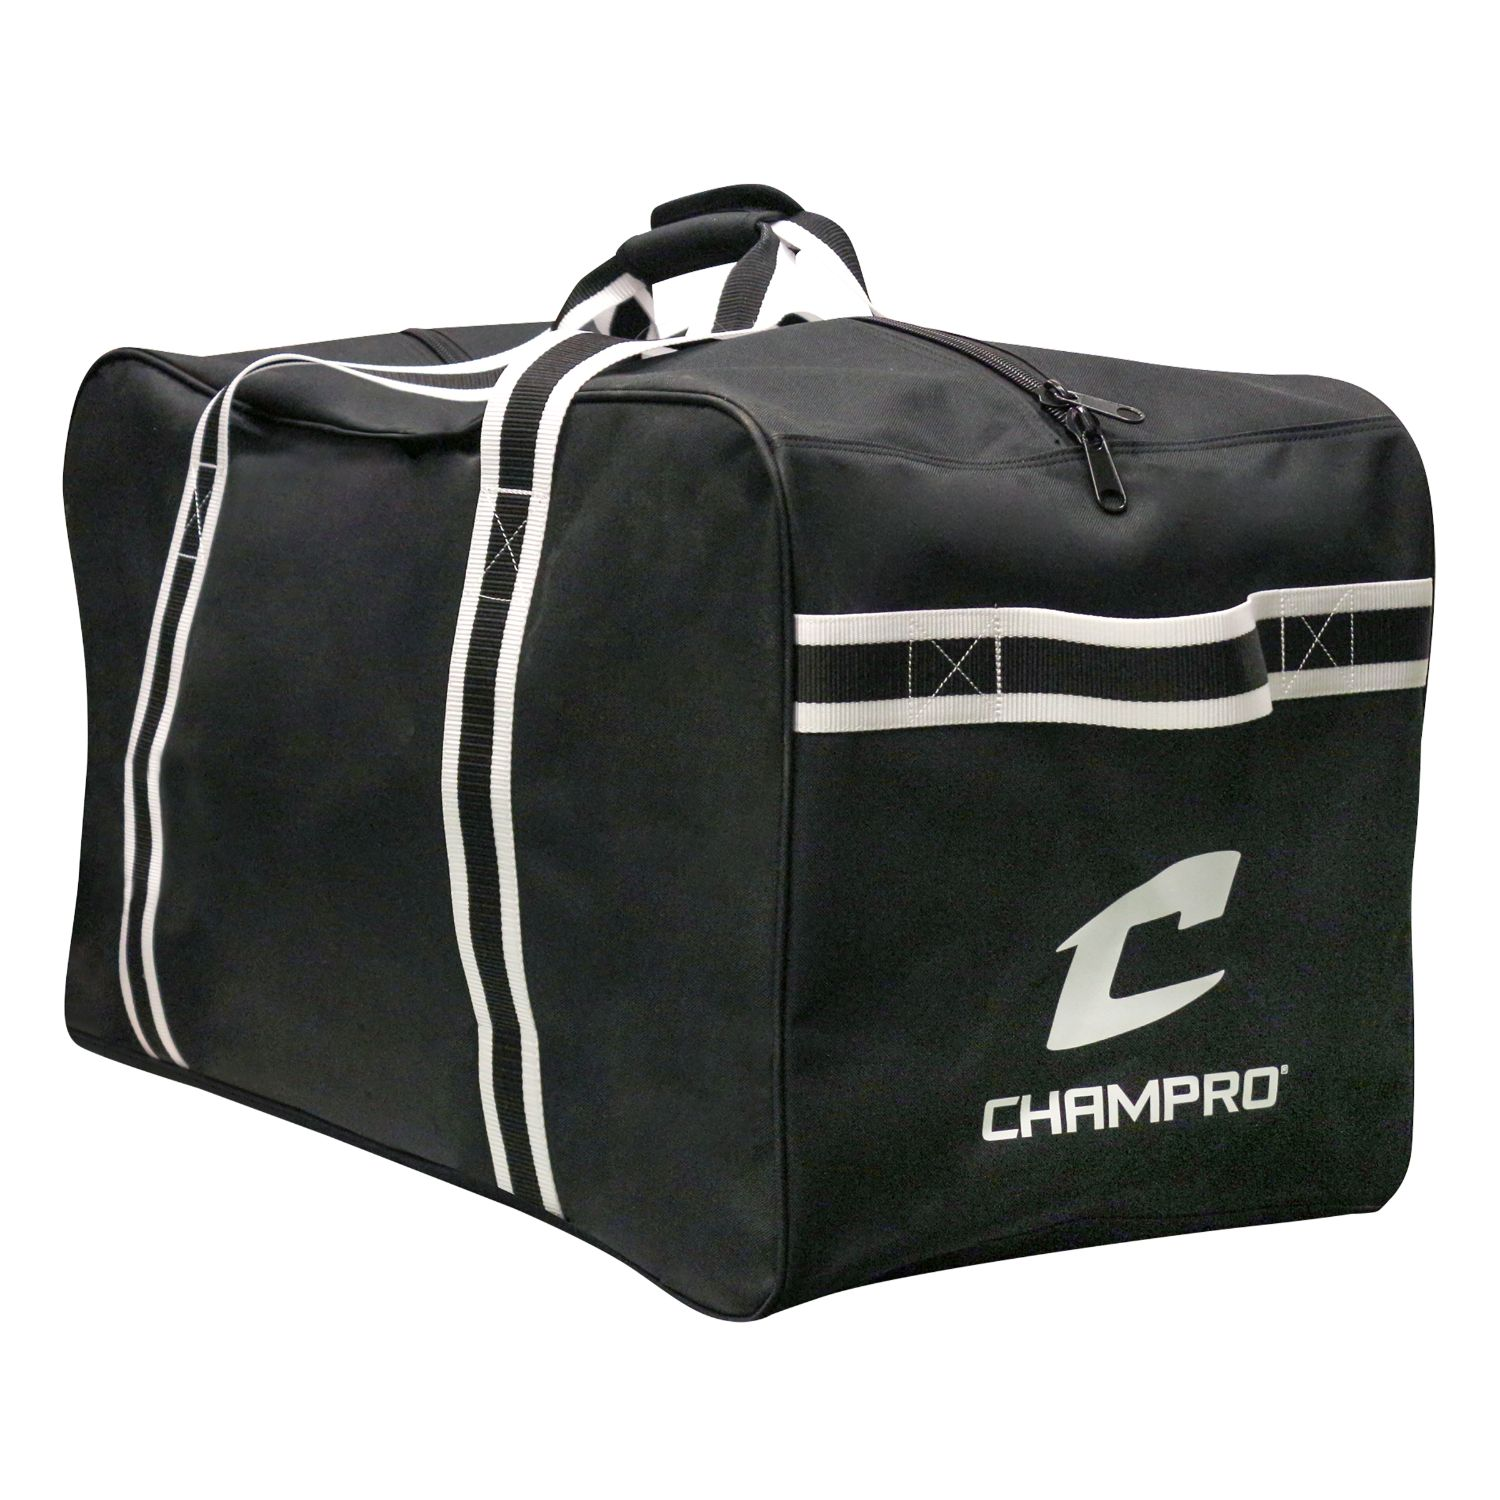 Champro Hockey Carry Bag Black Small